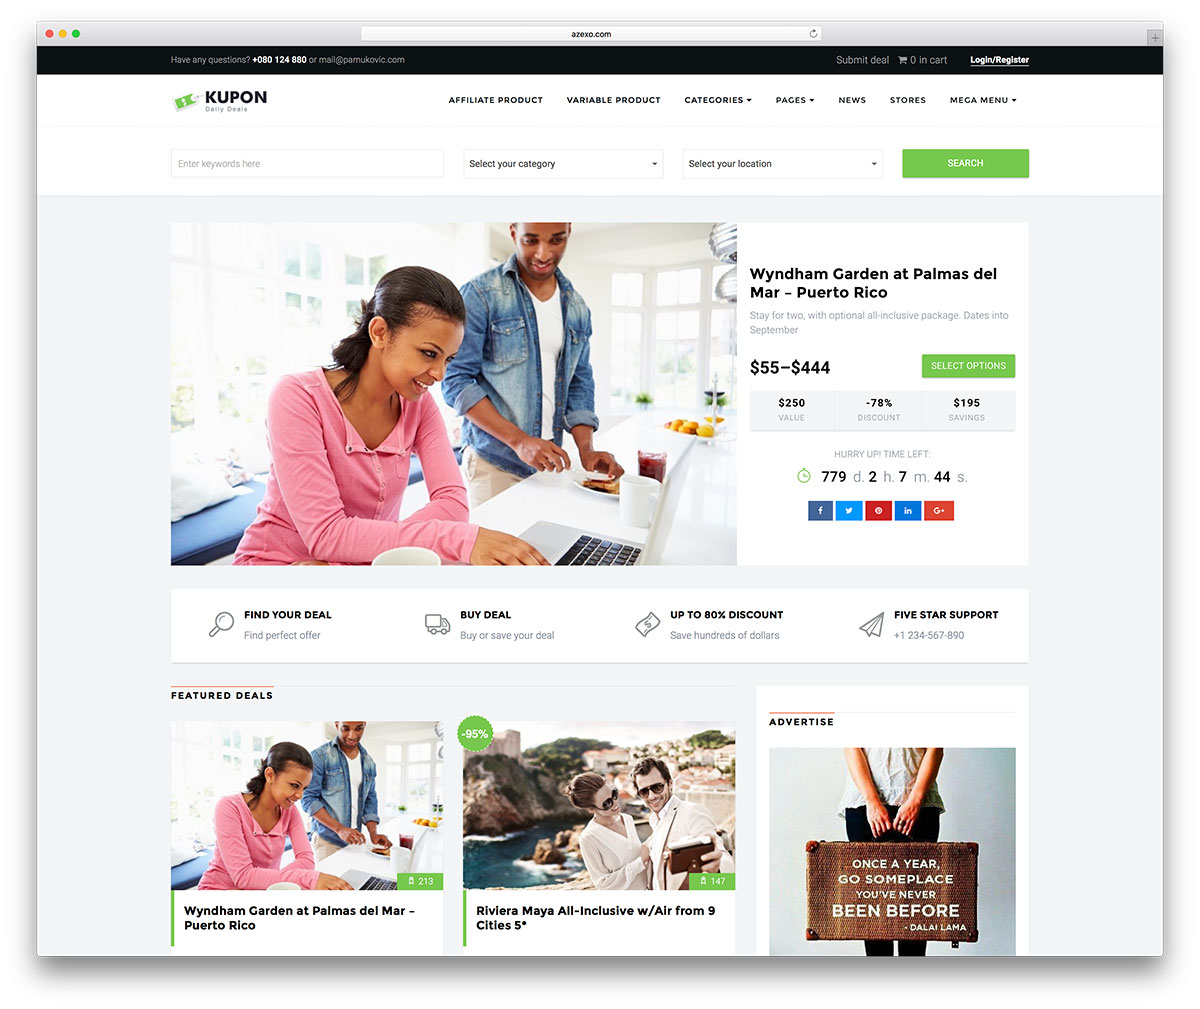 kupon-daily-deals-affilate-wordpress-theme